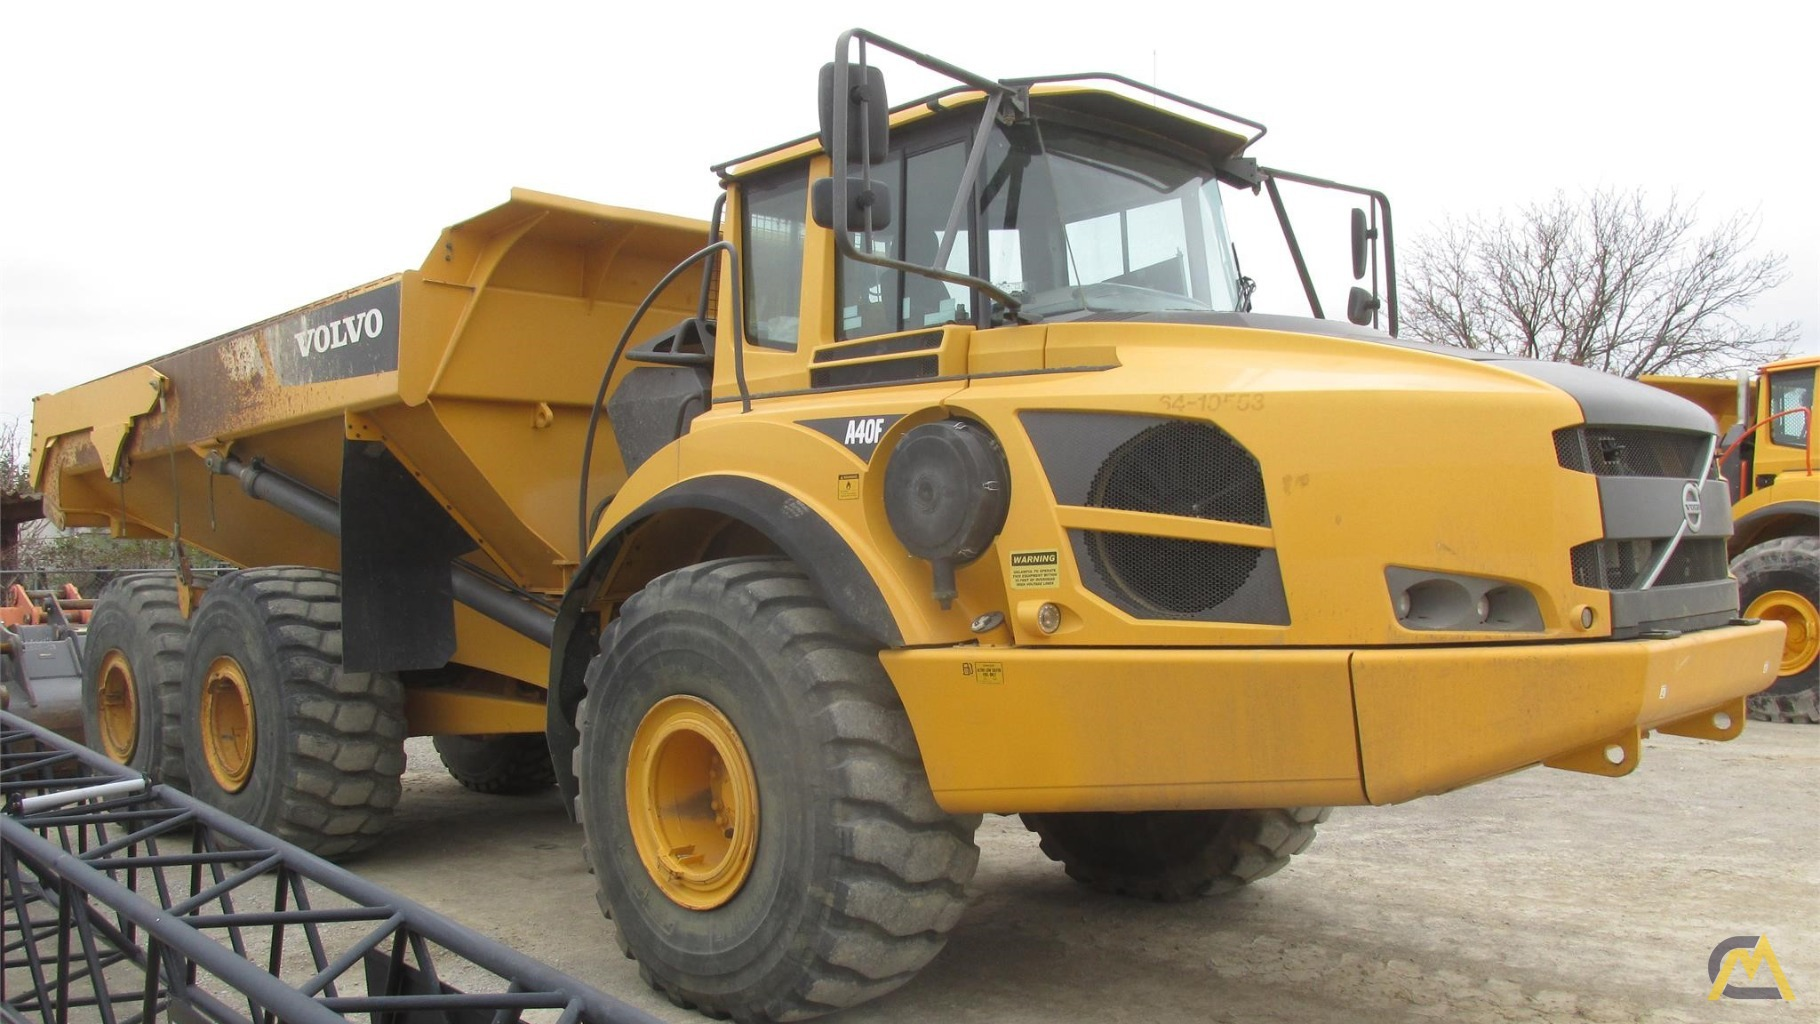 Volvo A40F Articulating Off Highway Dump Truck 0